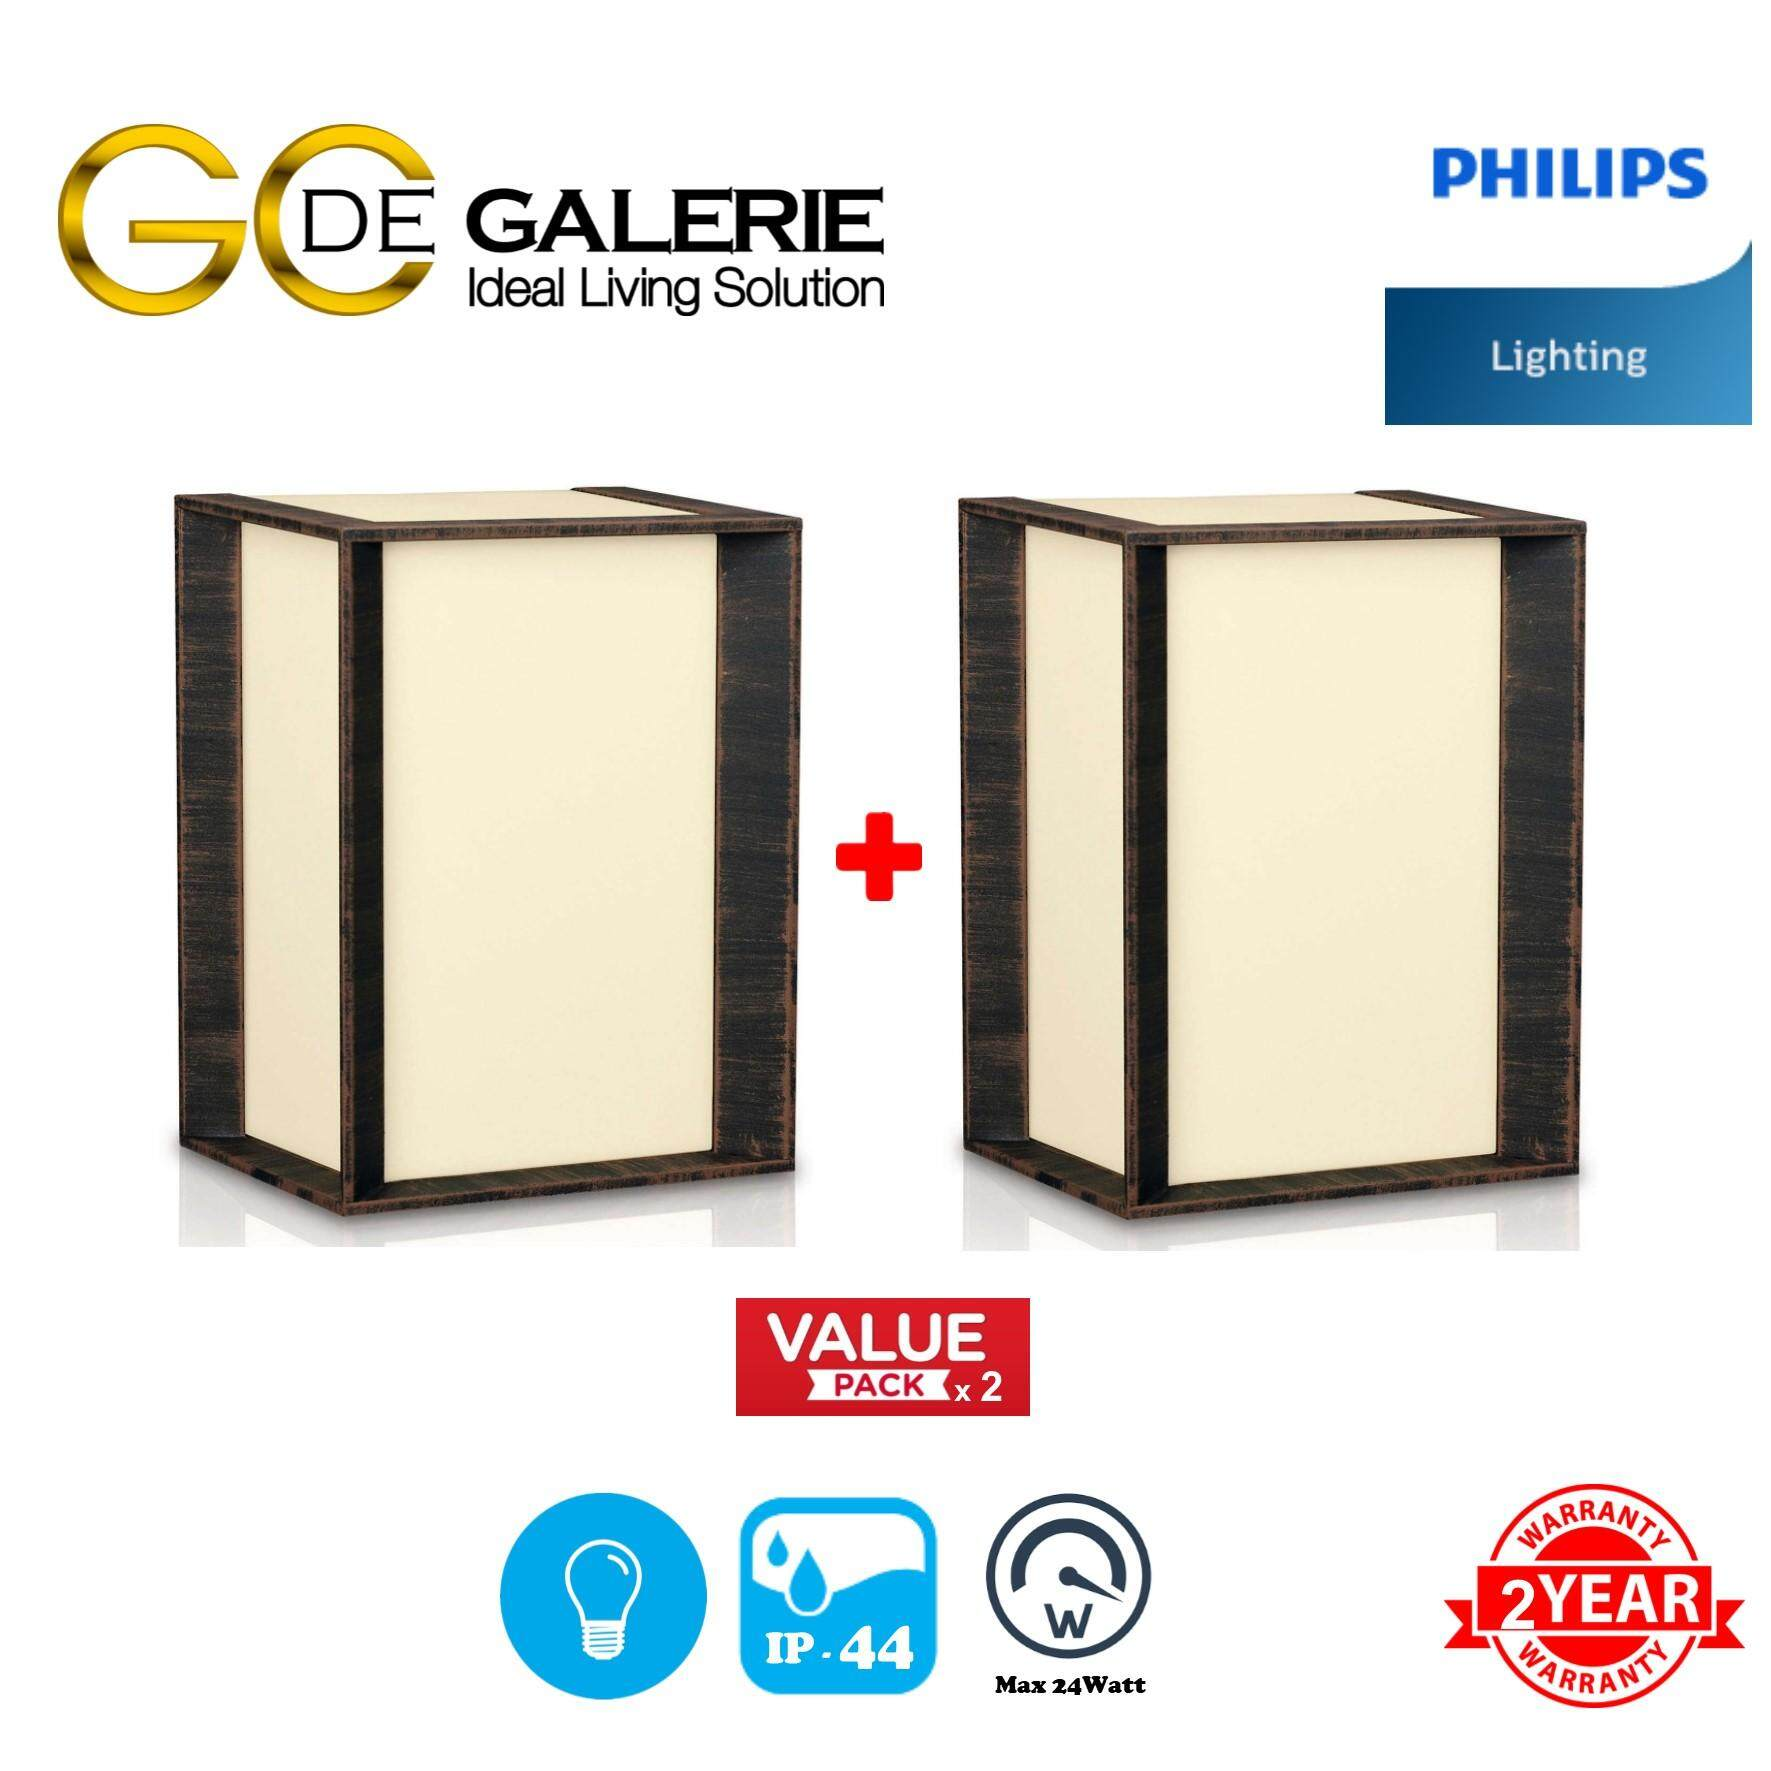 WALL LIGHT PHILIPS 17183 RUST 1X24W 230V (2 PACK)